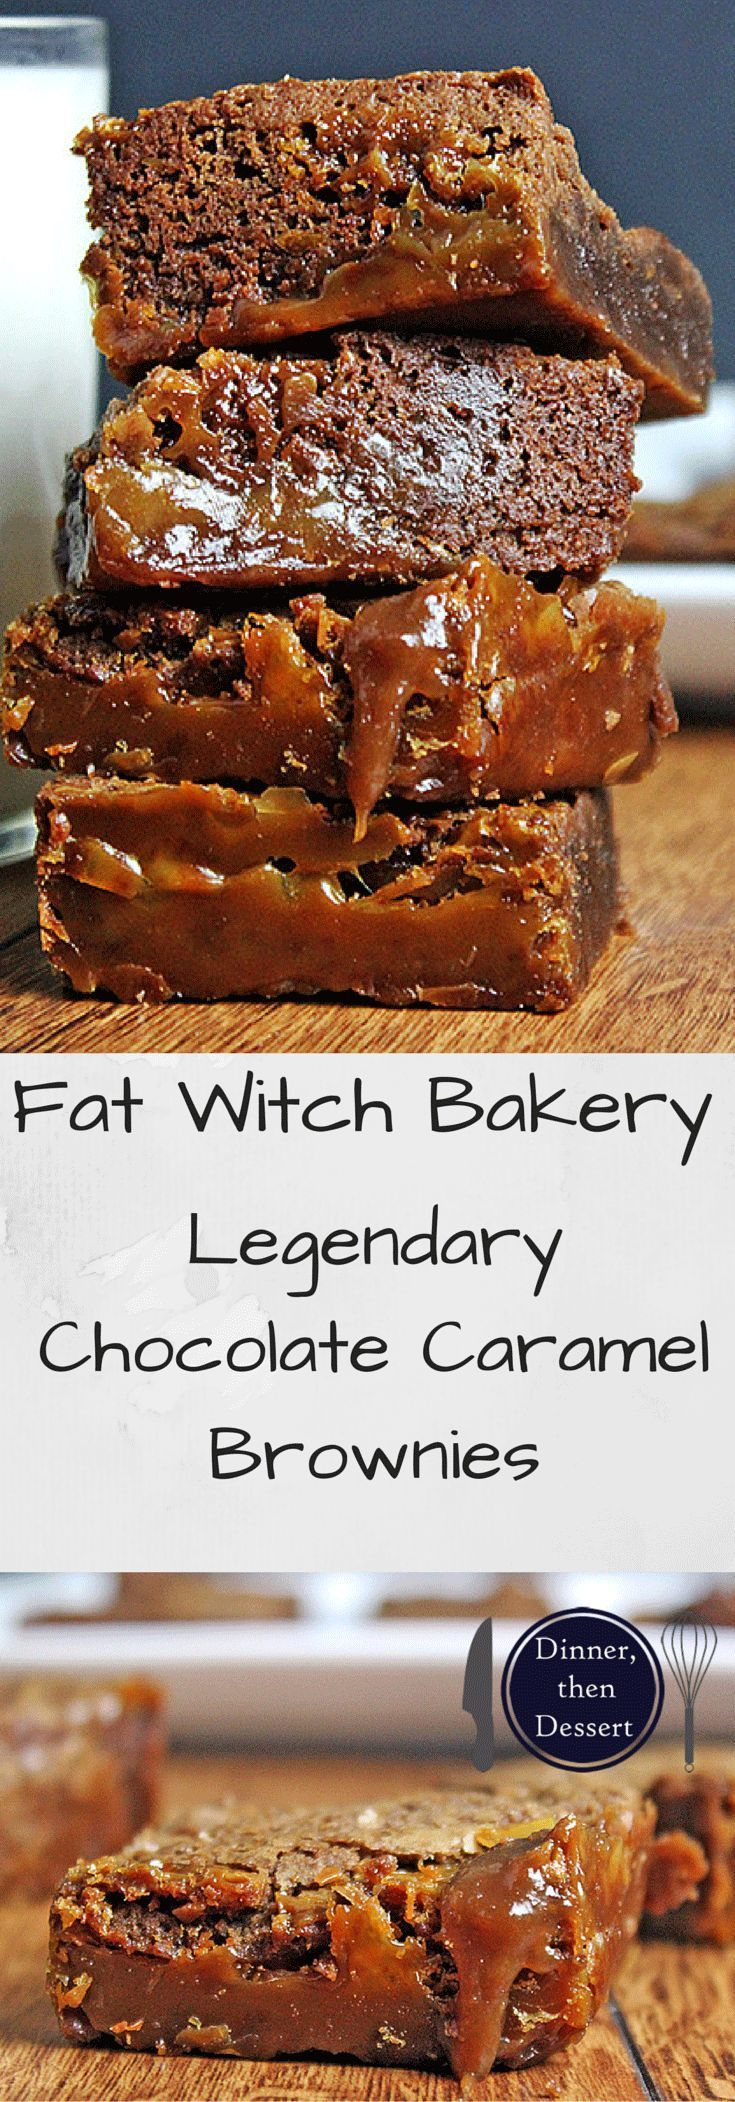 Fat Witch Bakery's Legendary Chocolate Caramel Brownies are soft, crisp, gooey, chocolate-y, chewy, decadent, rich, fudgy and cakey all in one bite.......